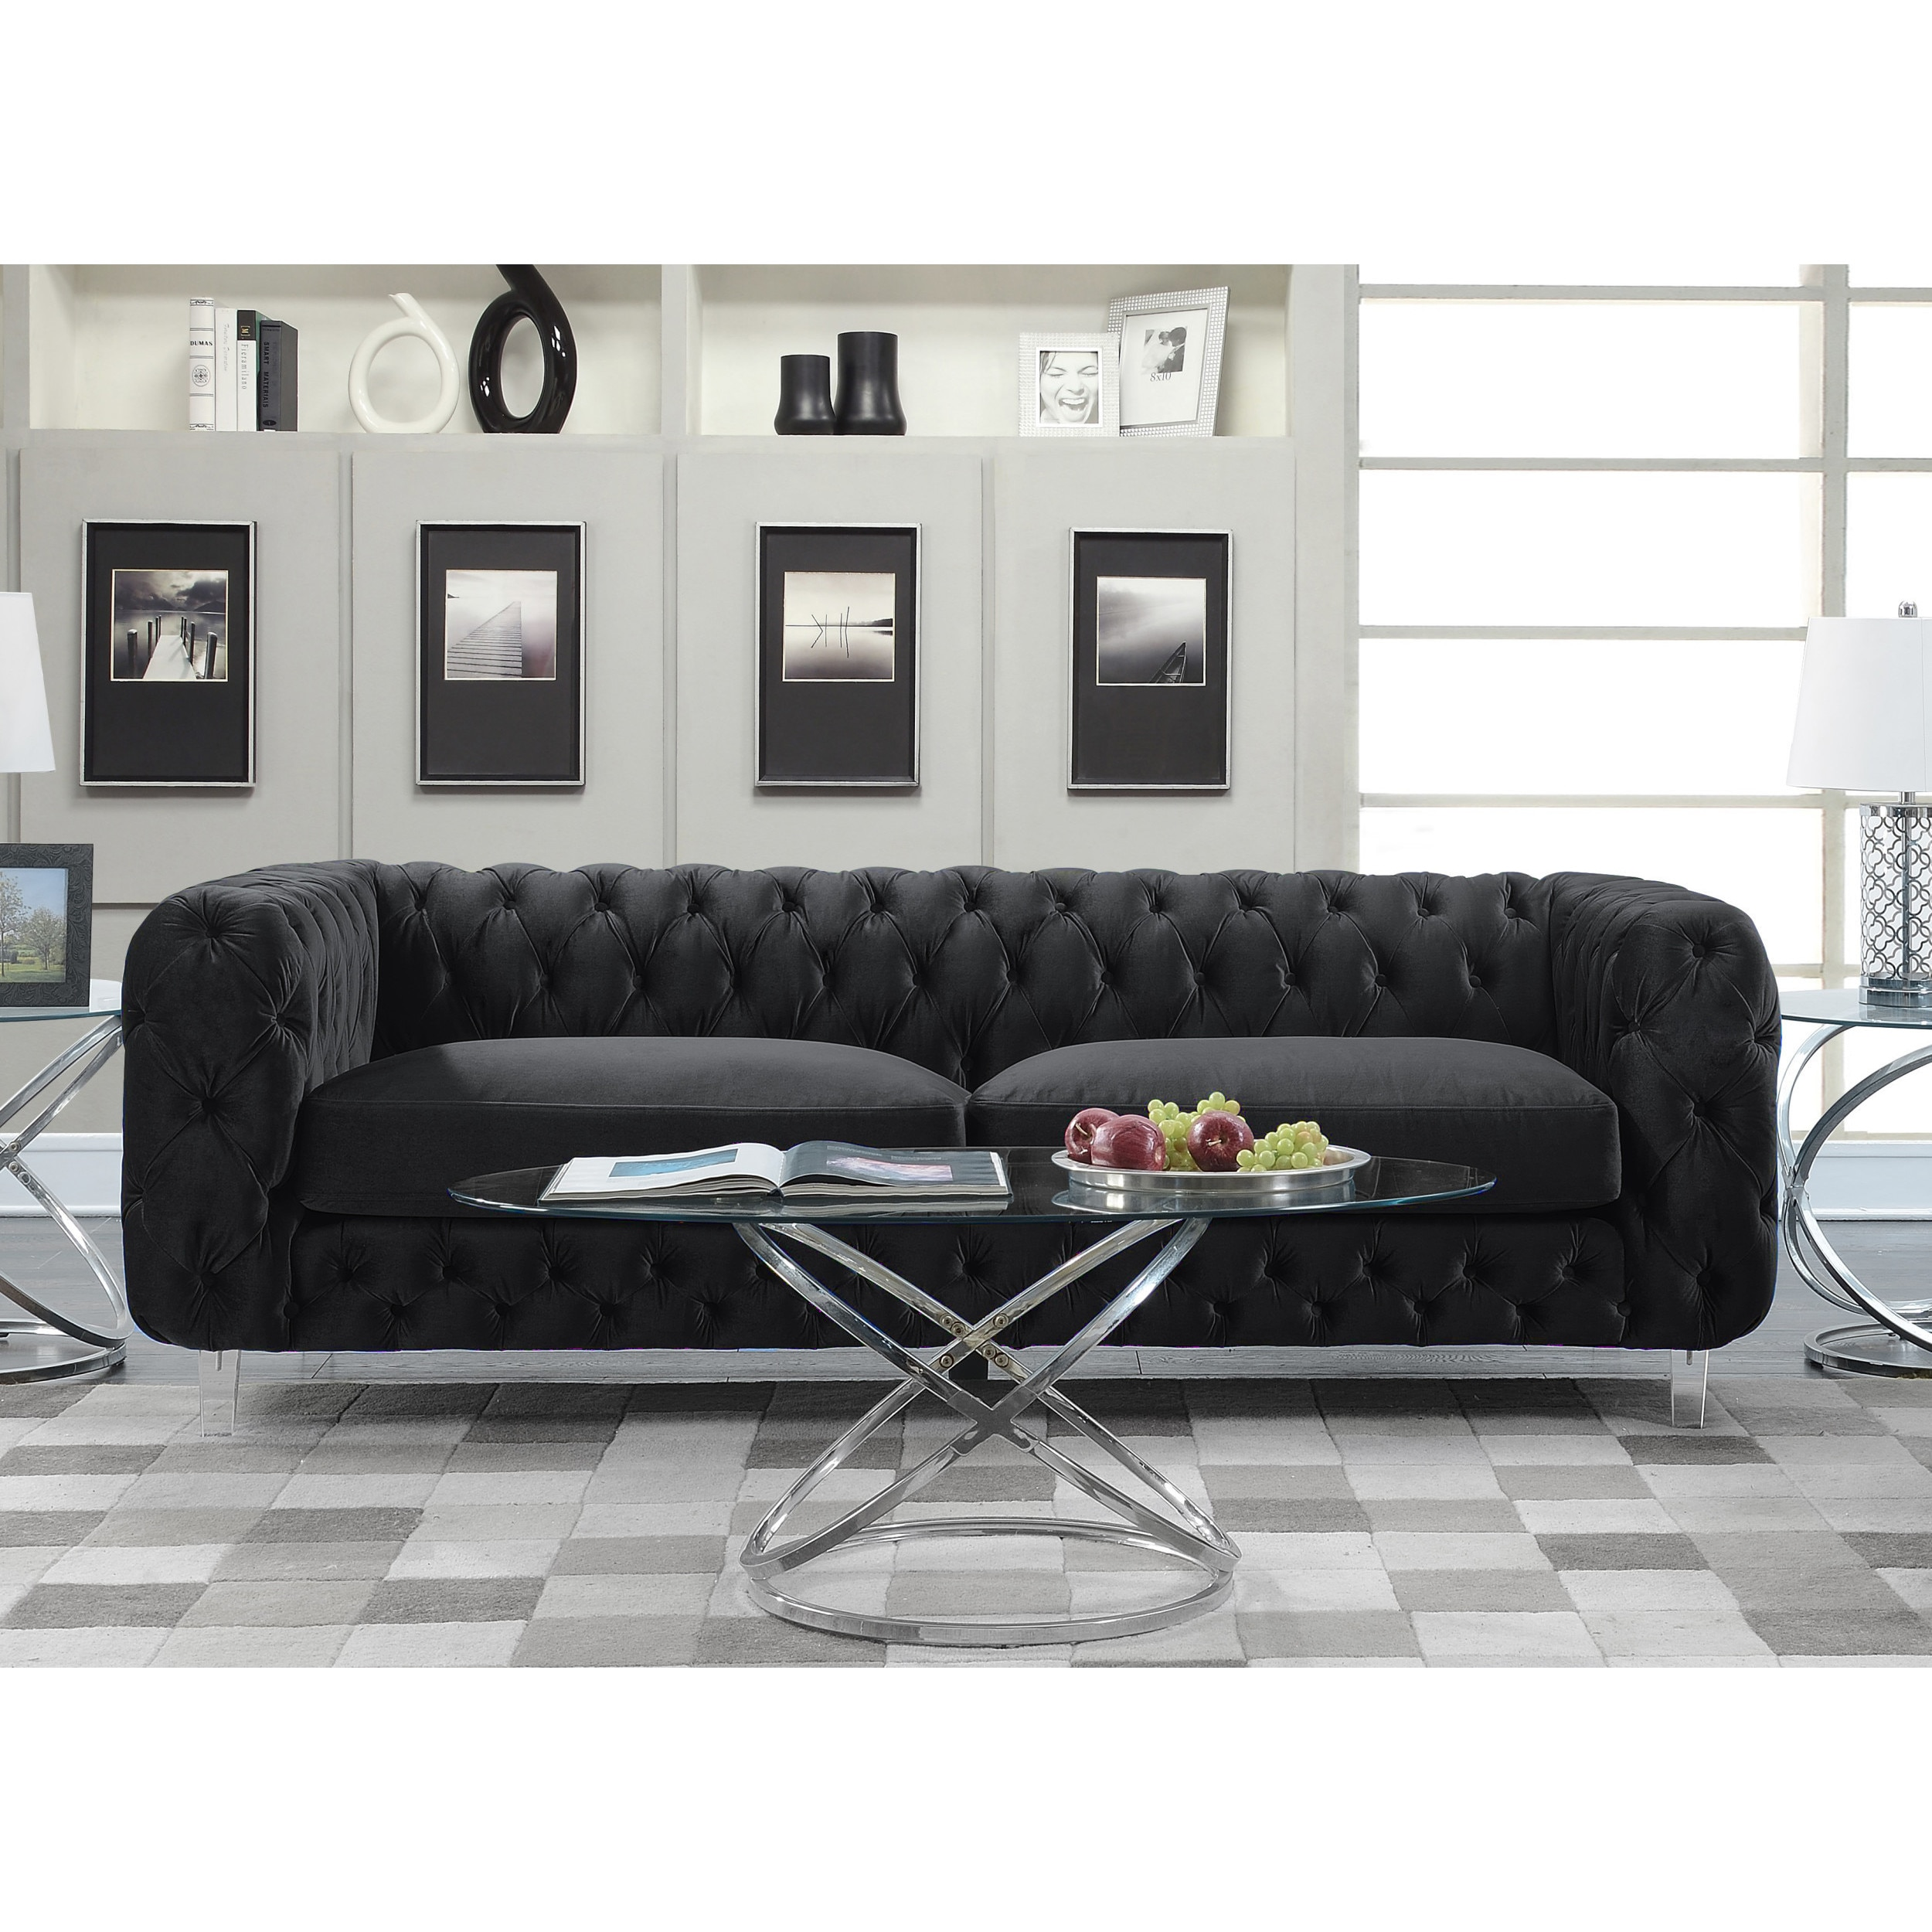 Chic home apollo modern contemporary tufted velvet down mix cushions sofa